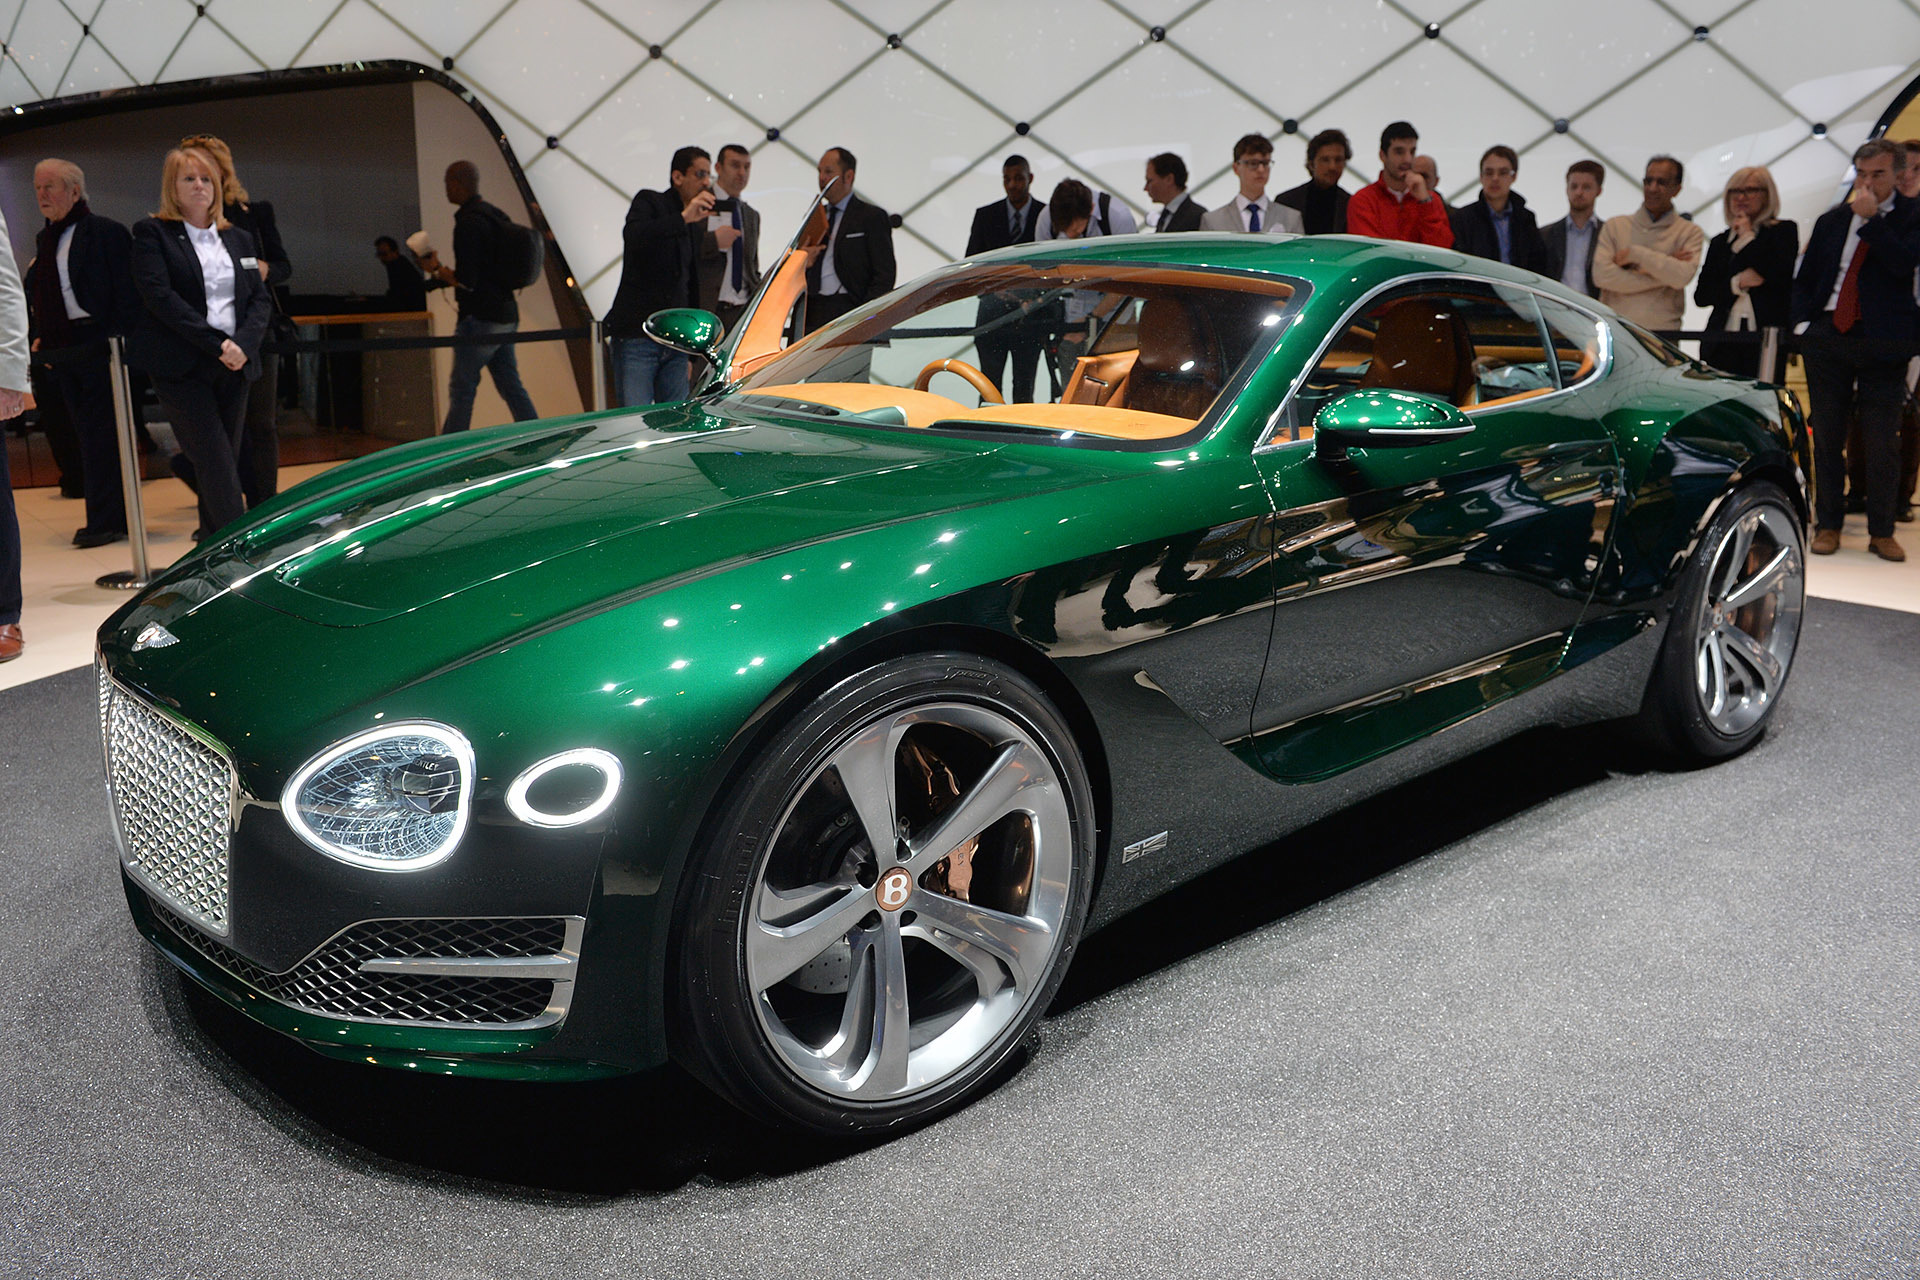 Bentley exp 10 speed 6 geneva cover